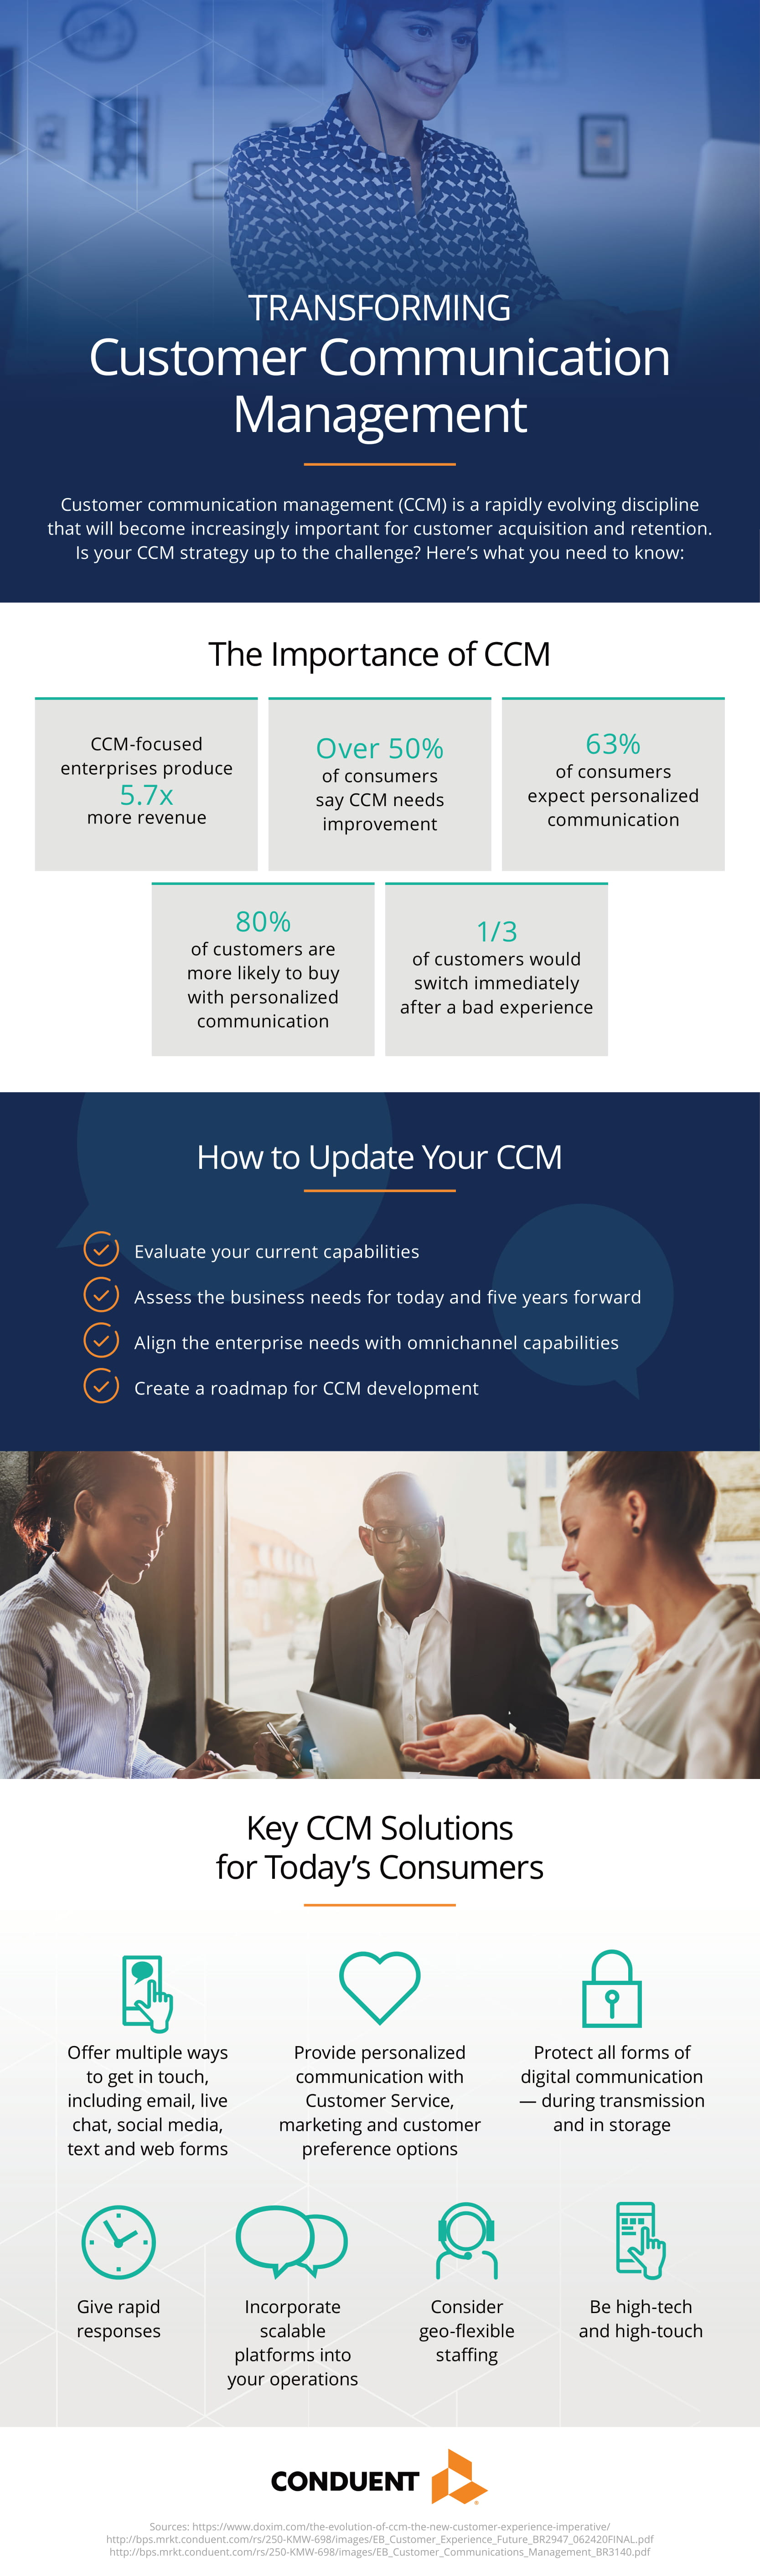 The Keys to A Well-Polished Customer Communication Management Strategy